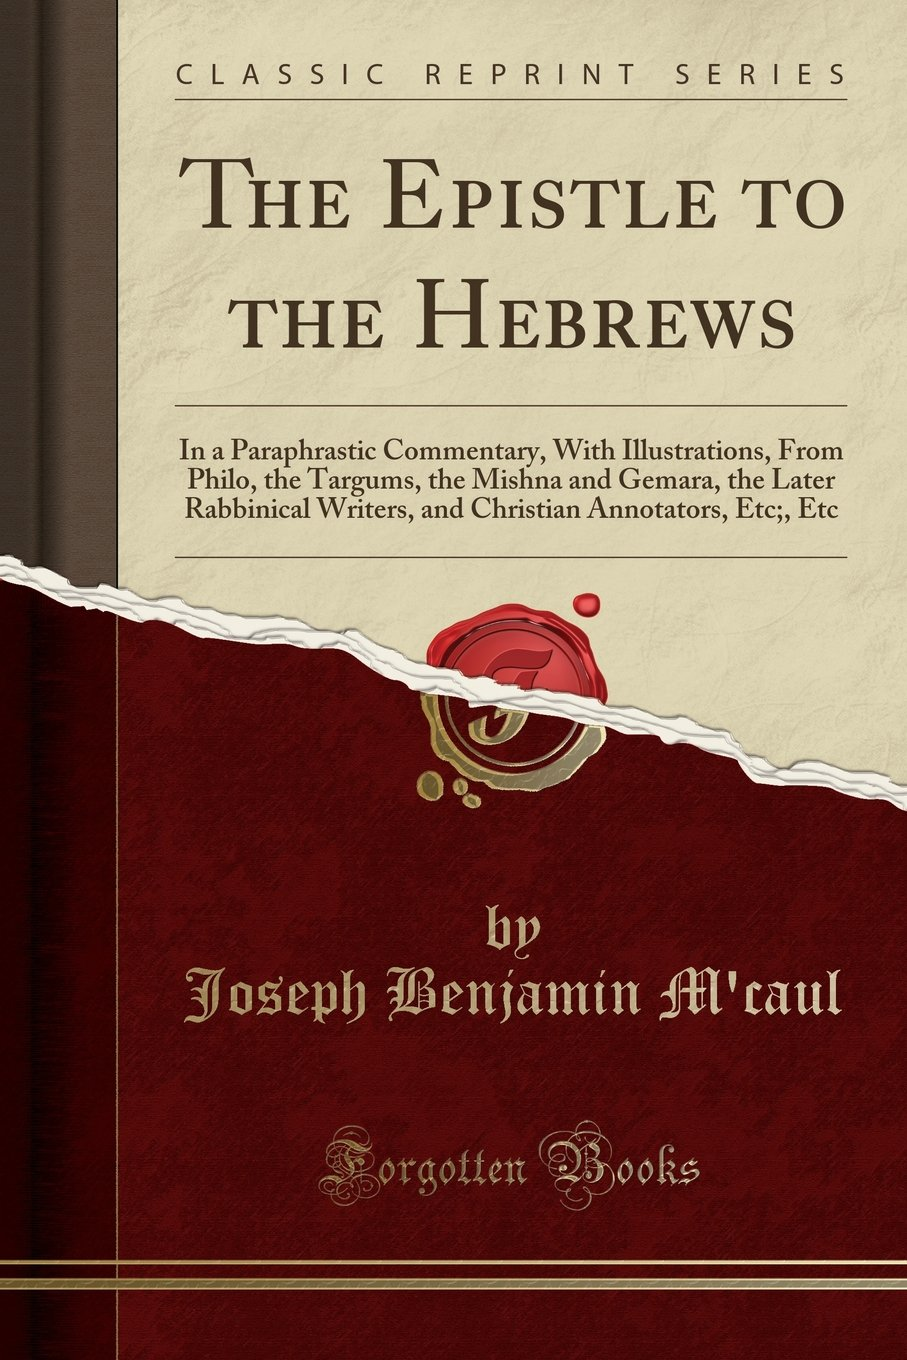 Download The Epistle to the Hebrews: In a Paraphrastic Commentary, With Illustrations, From Philo, the Targums, the Mishna and Gemara, the Later Rabbinical ... Annotators, Etc;, Etc (Classic Reprint) PDF